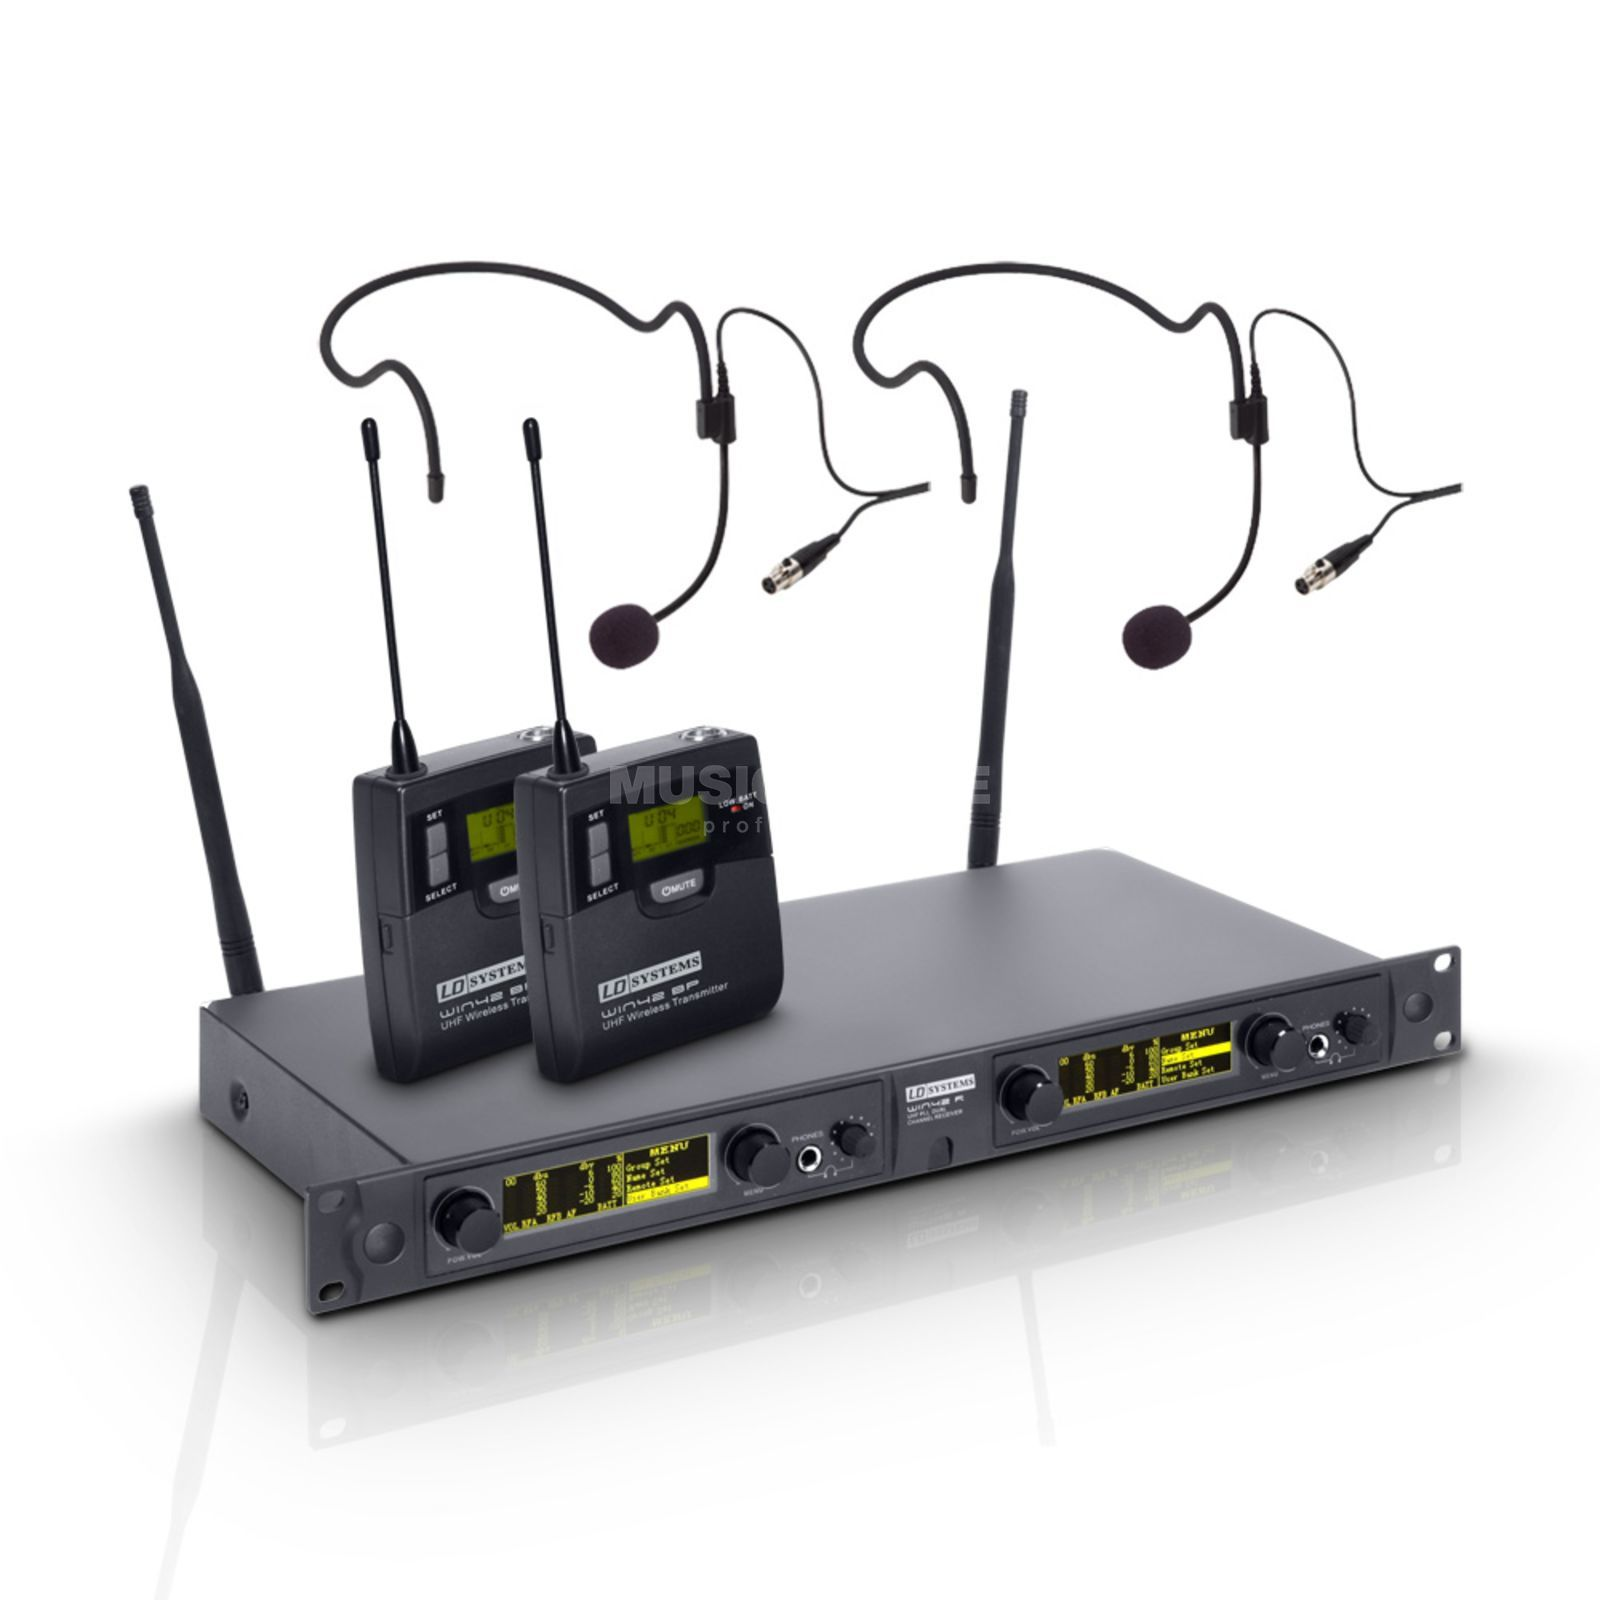 LD-Systems WIN 42 BPH 2 B5 m. 2 Headsets 516-558 MHz Produktbild